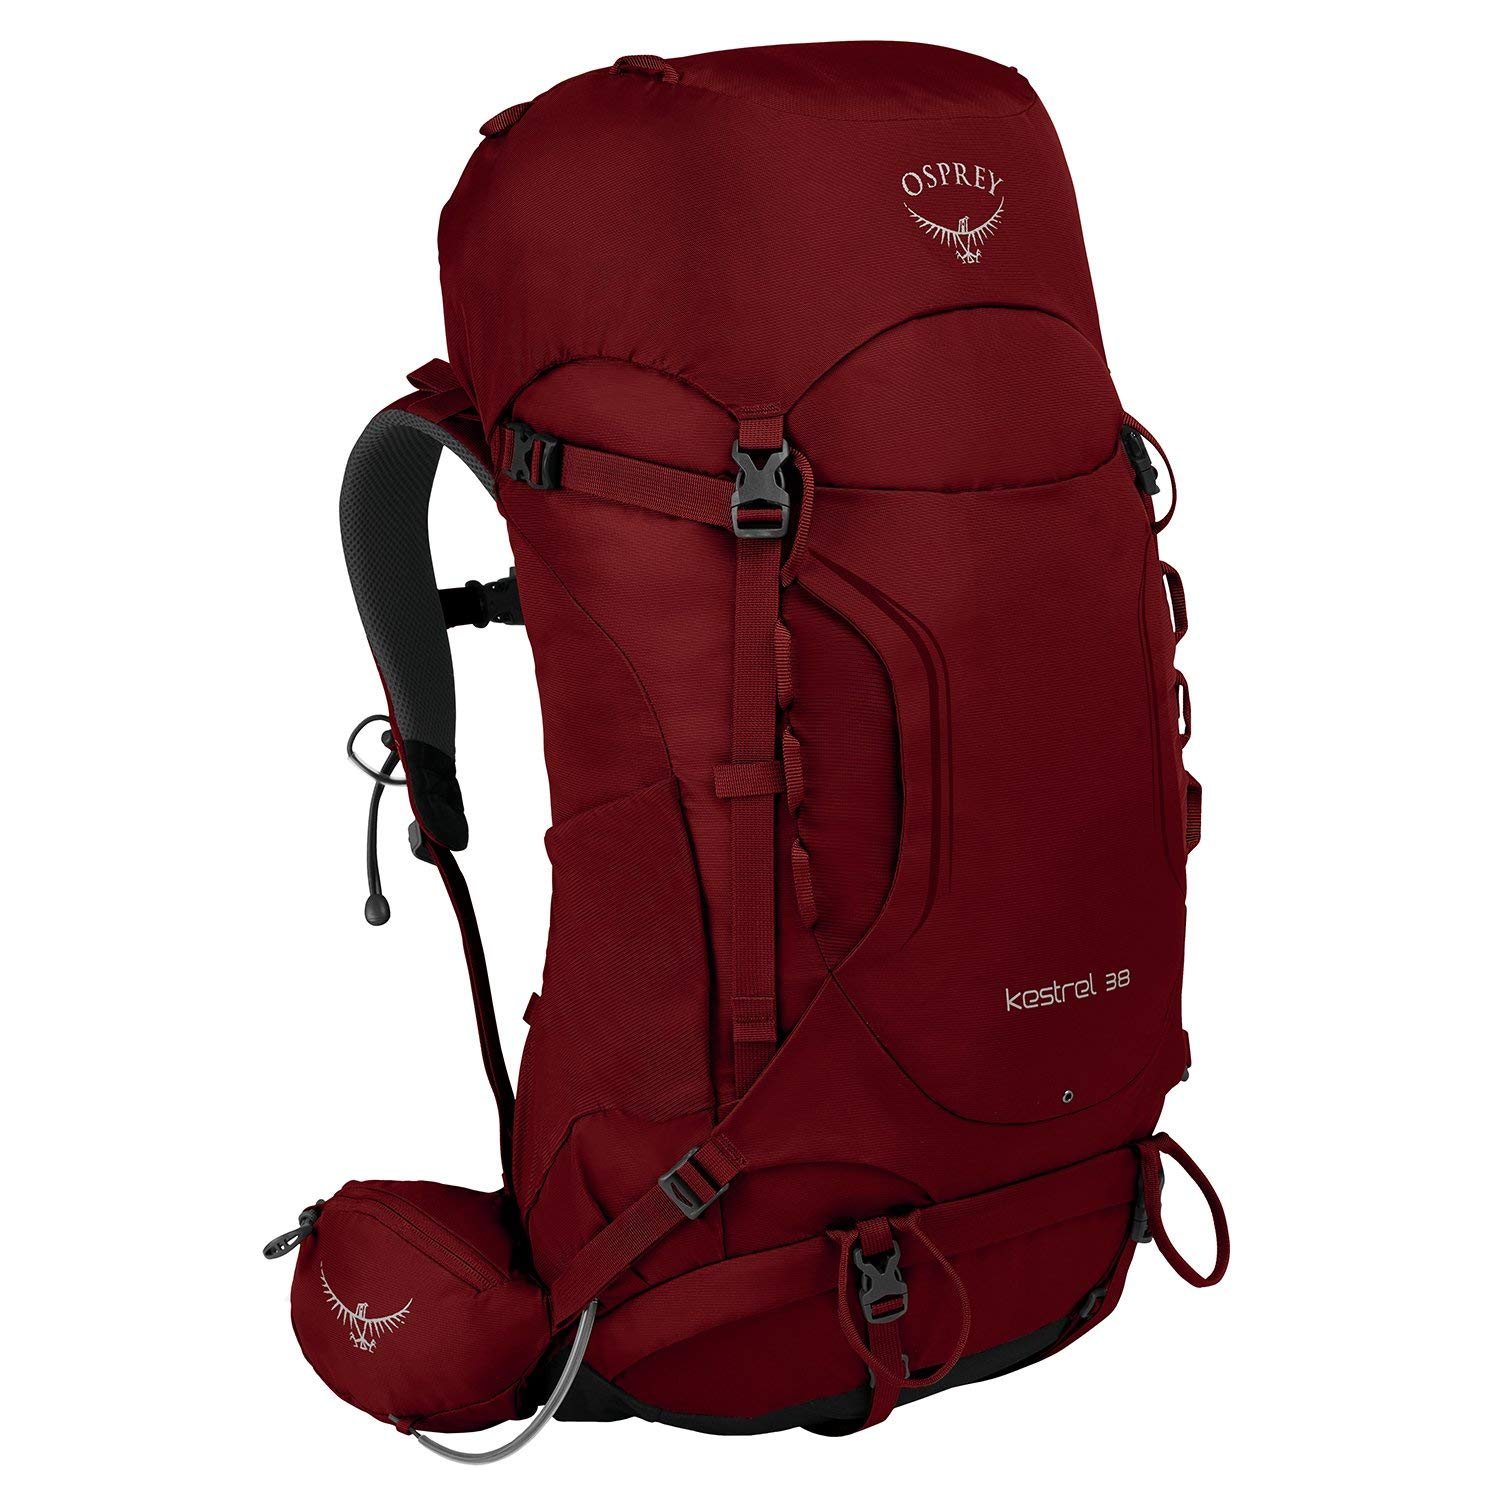 Osprey Kestrel 38 Hiking Backpack Medium/Large Rogue Red